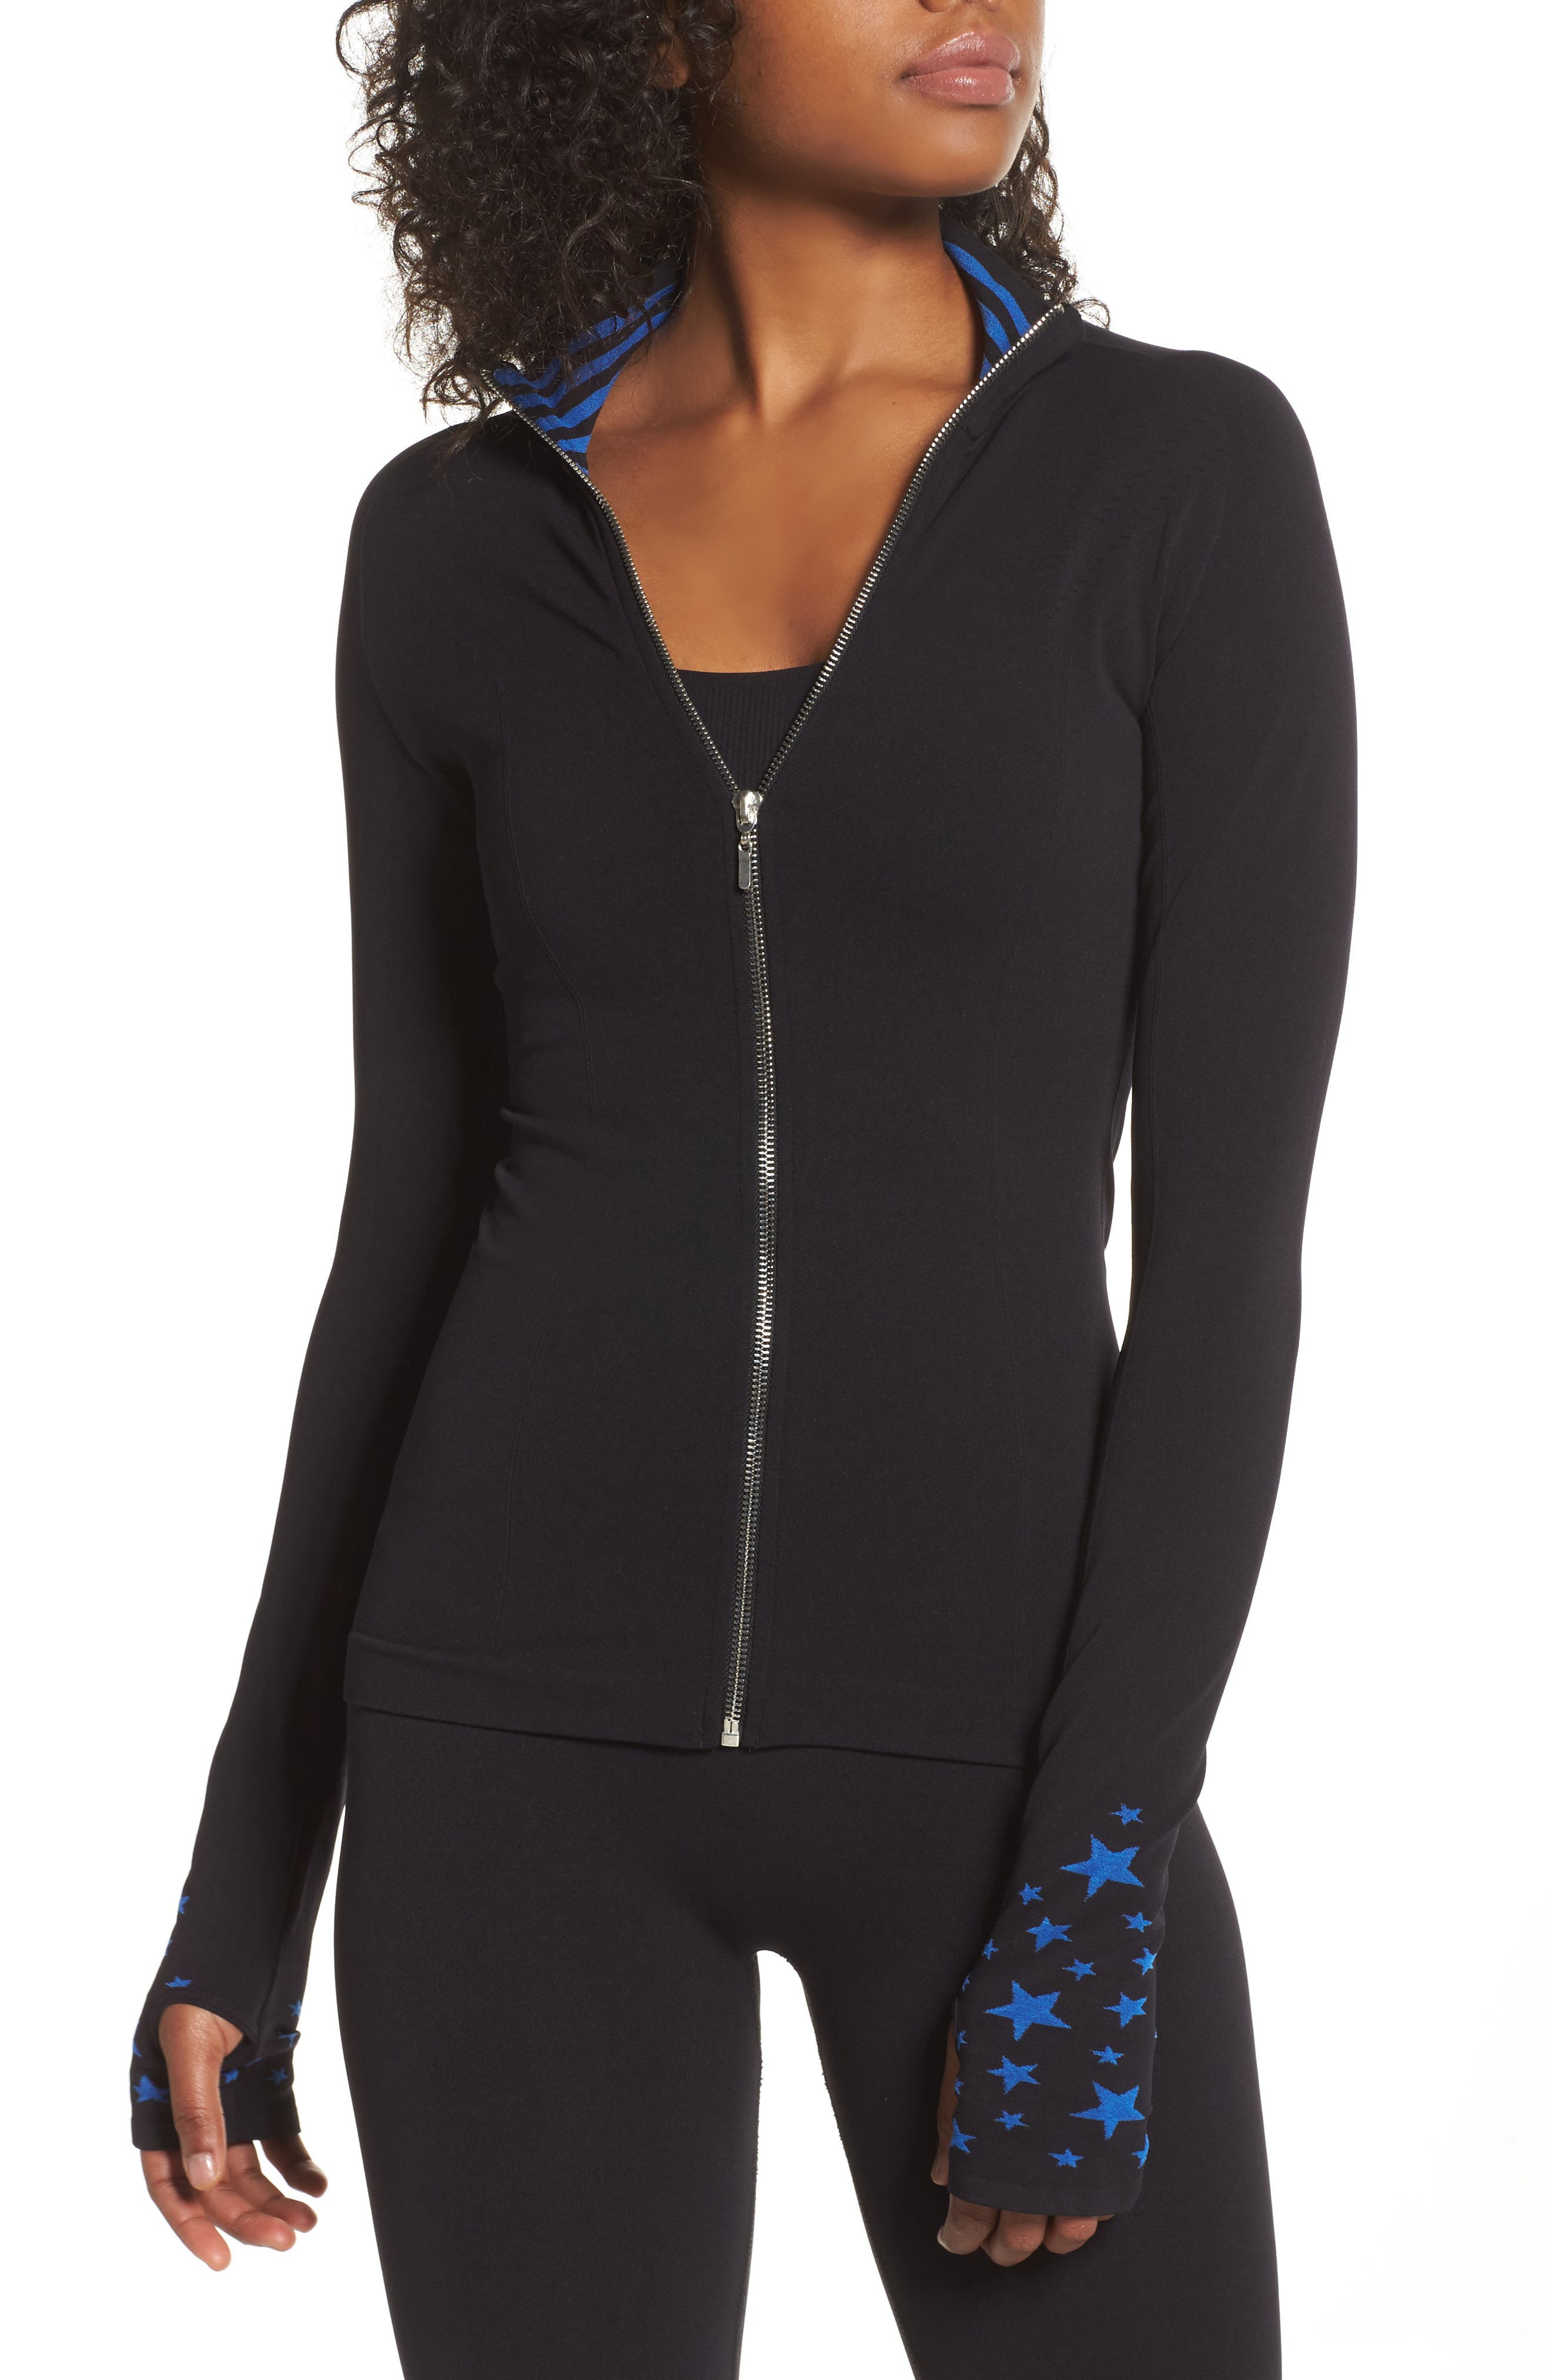 BoomBoom Athletica Seamless Star Jacket,                         Main,                         color, 006